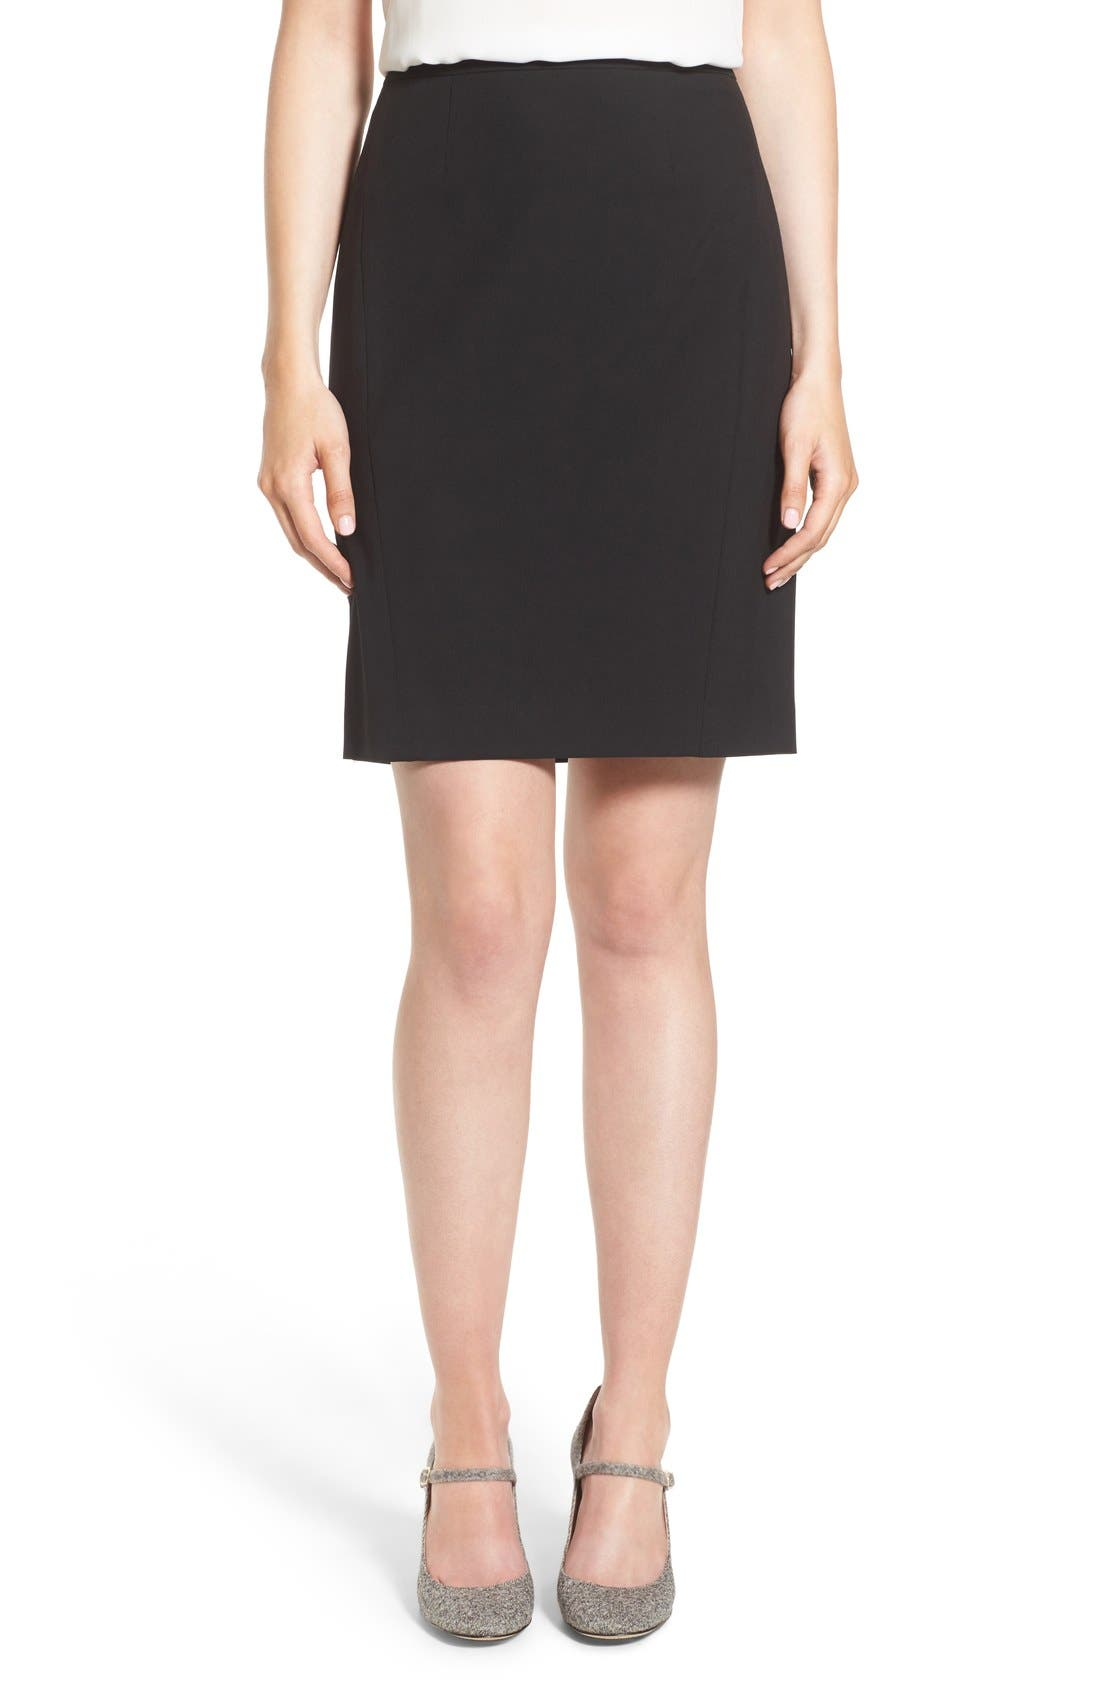 Skirts Work & Business Casual Clothes for Women | Nordstrom